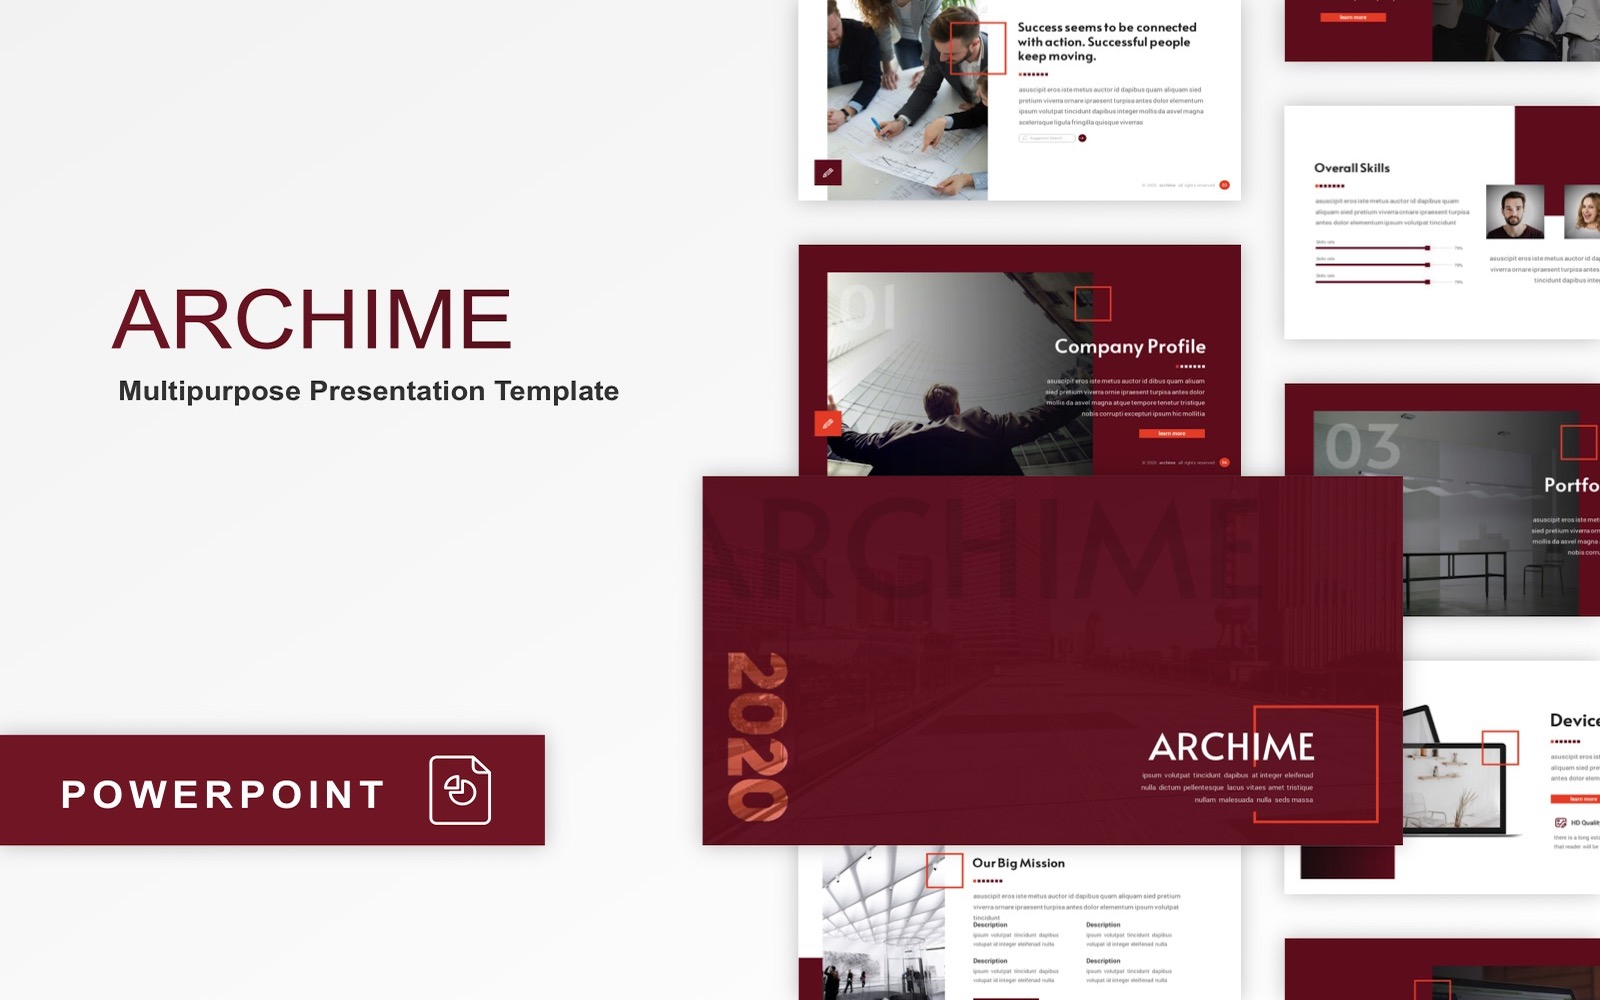 Archime - Multipurpose PowerPoint Template